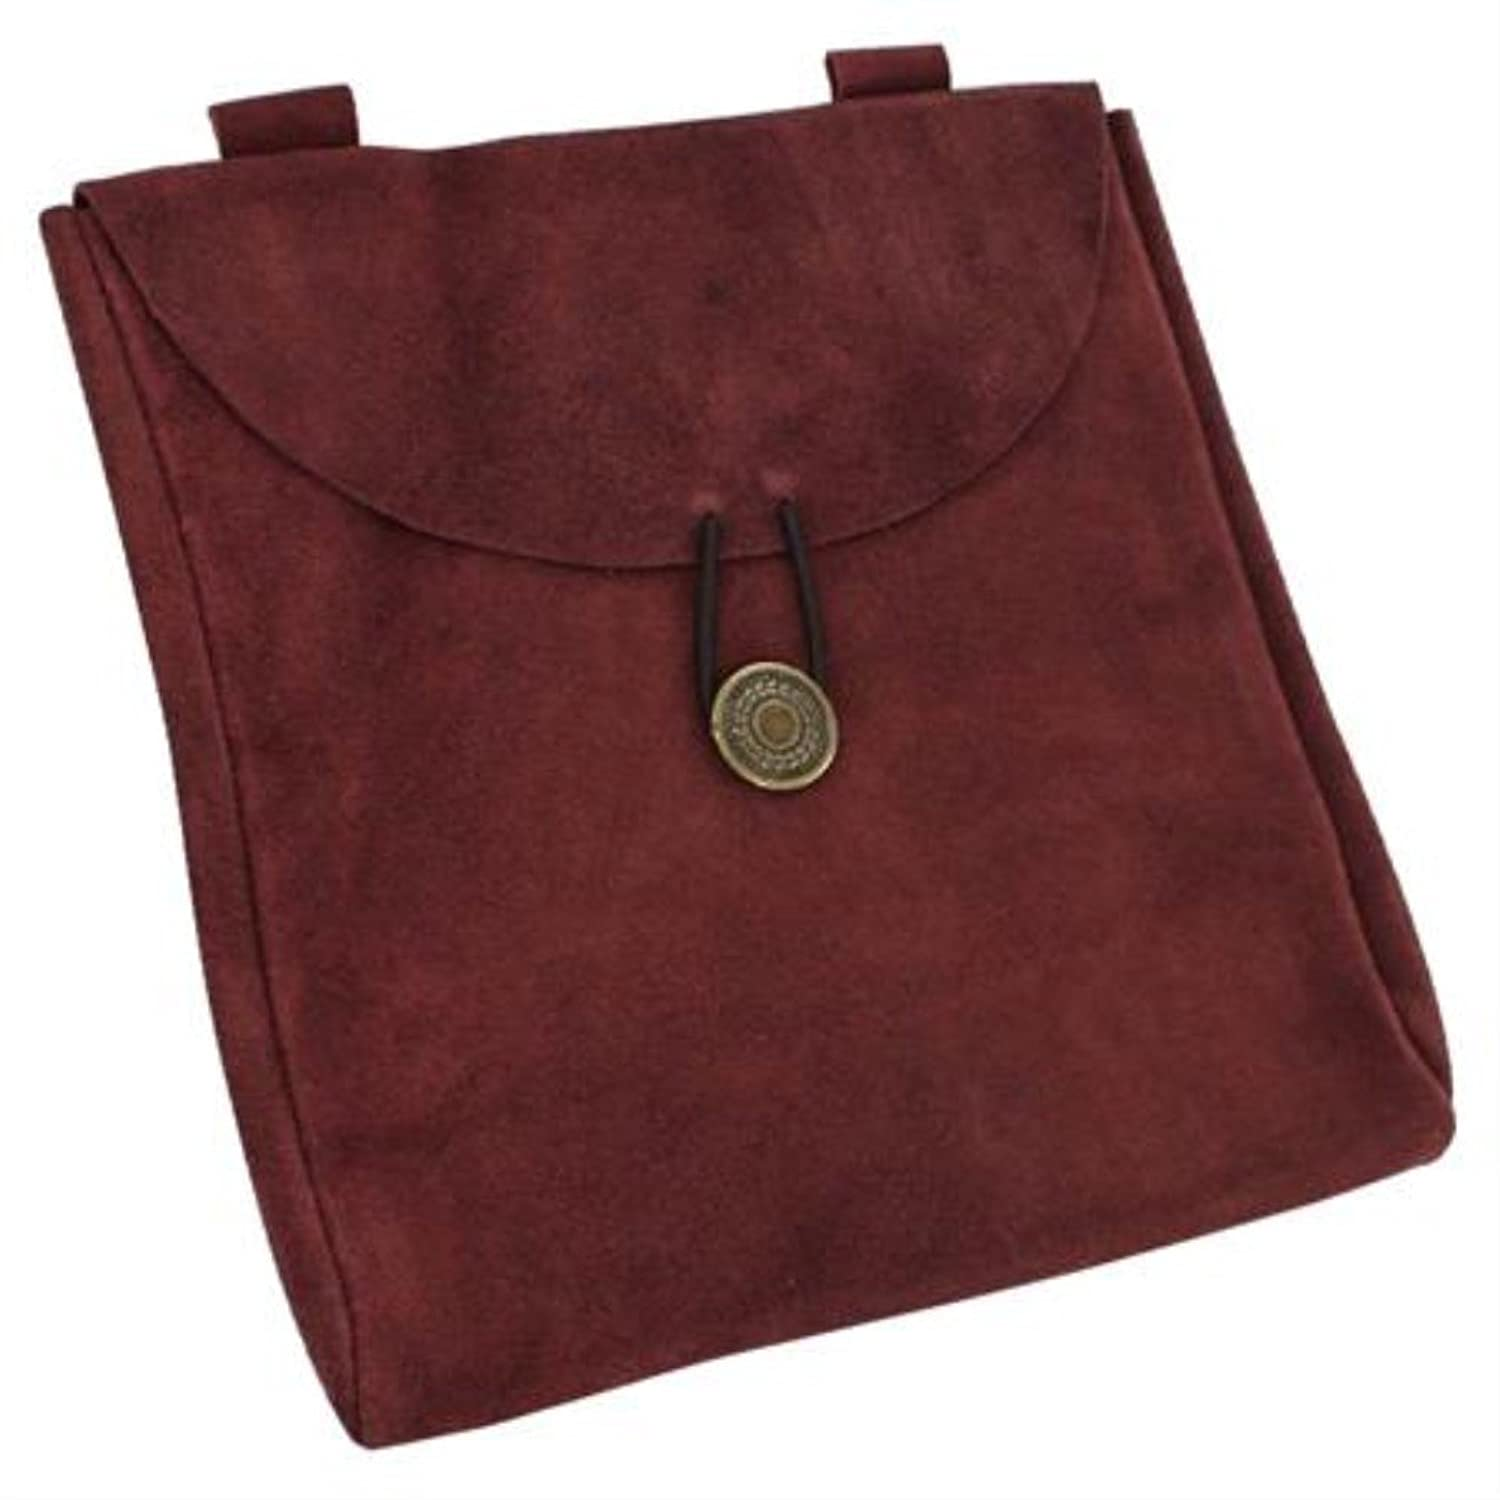 Medieval Renaissance large dark red claret wine suede leather belt pouch